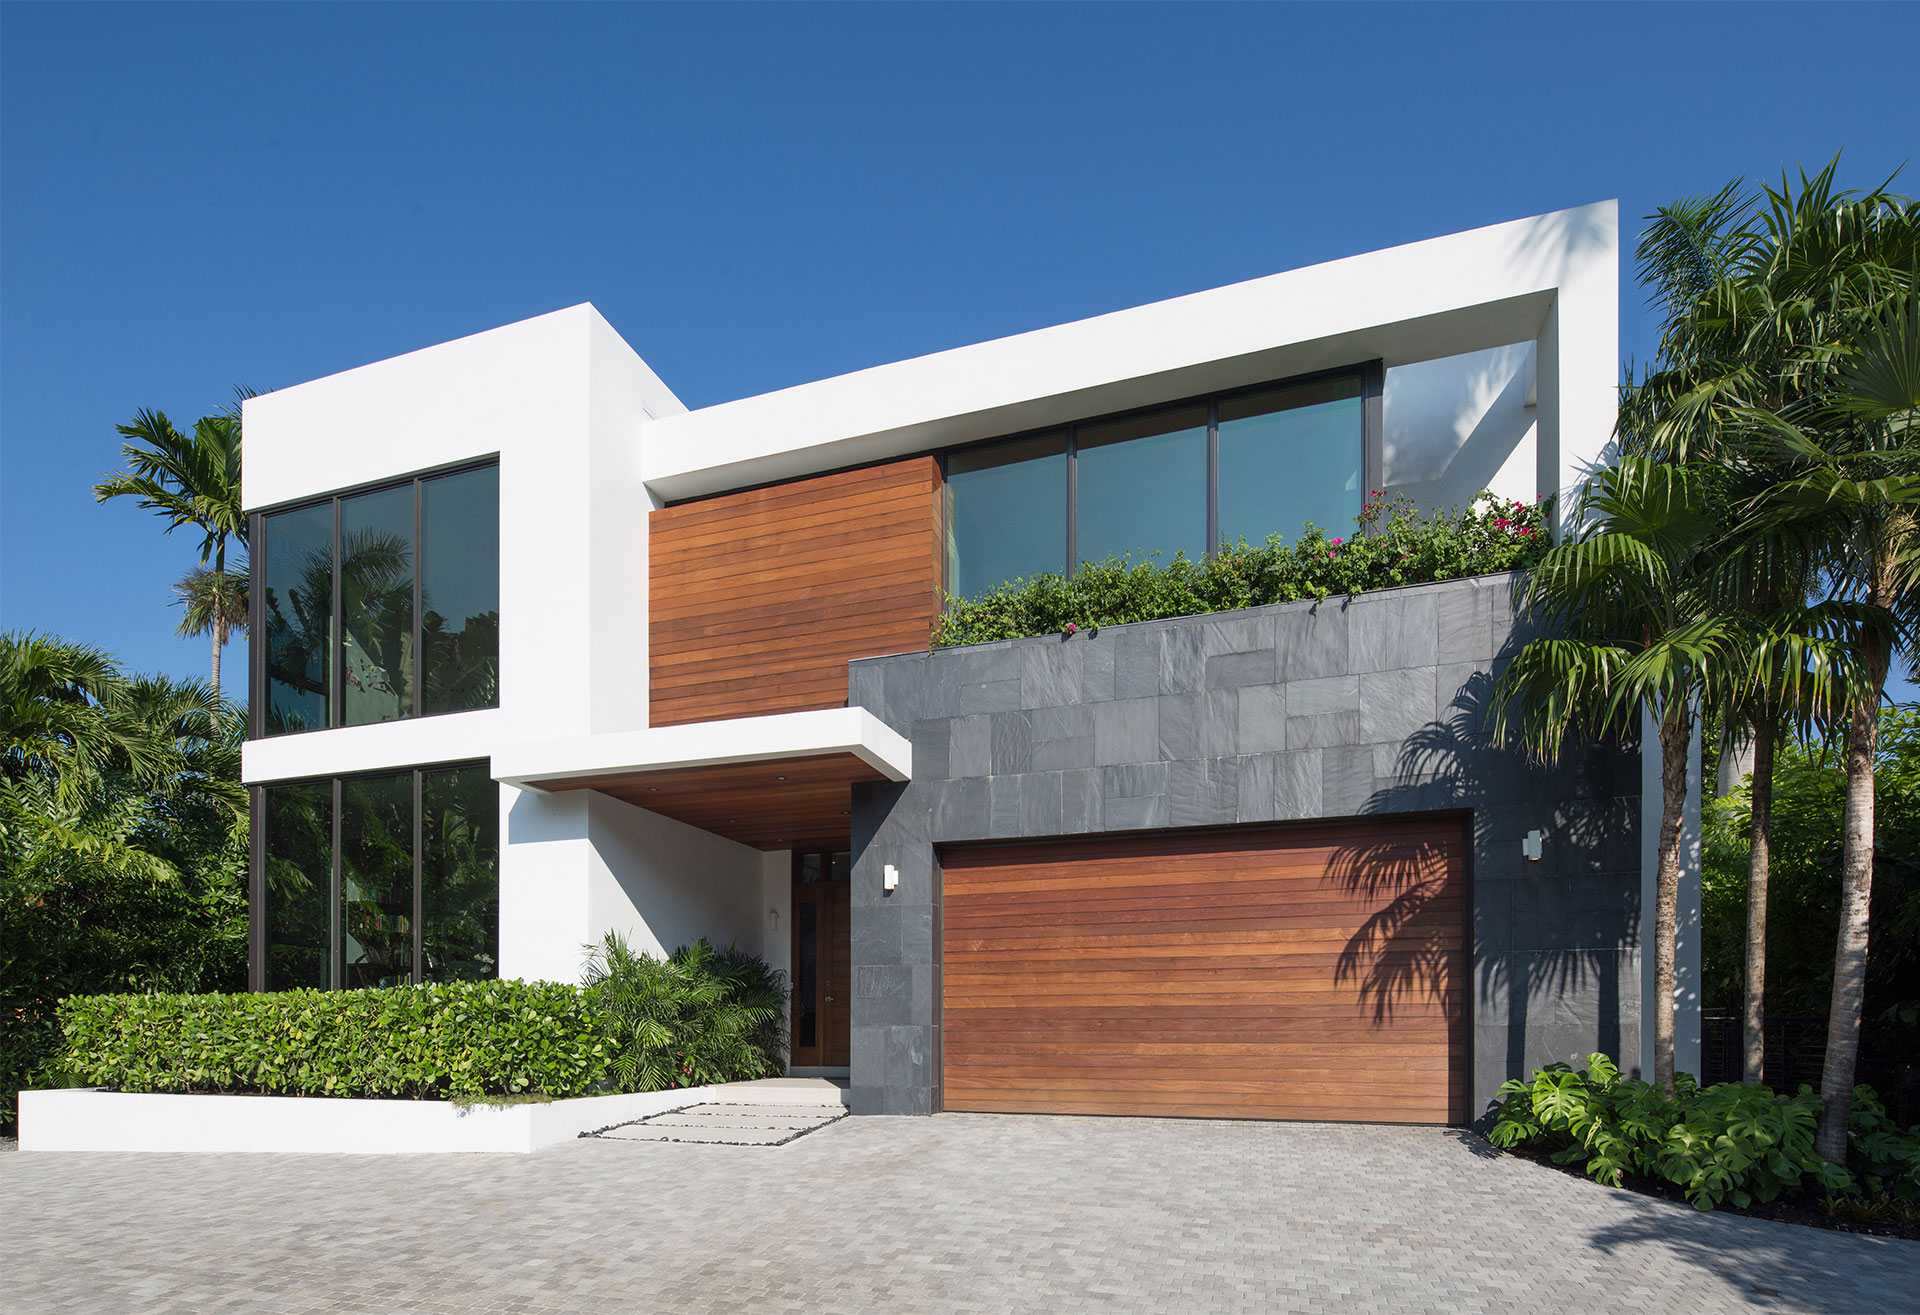 Architecture project in 475 Center Island Drive, Florida